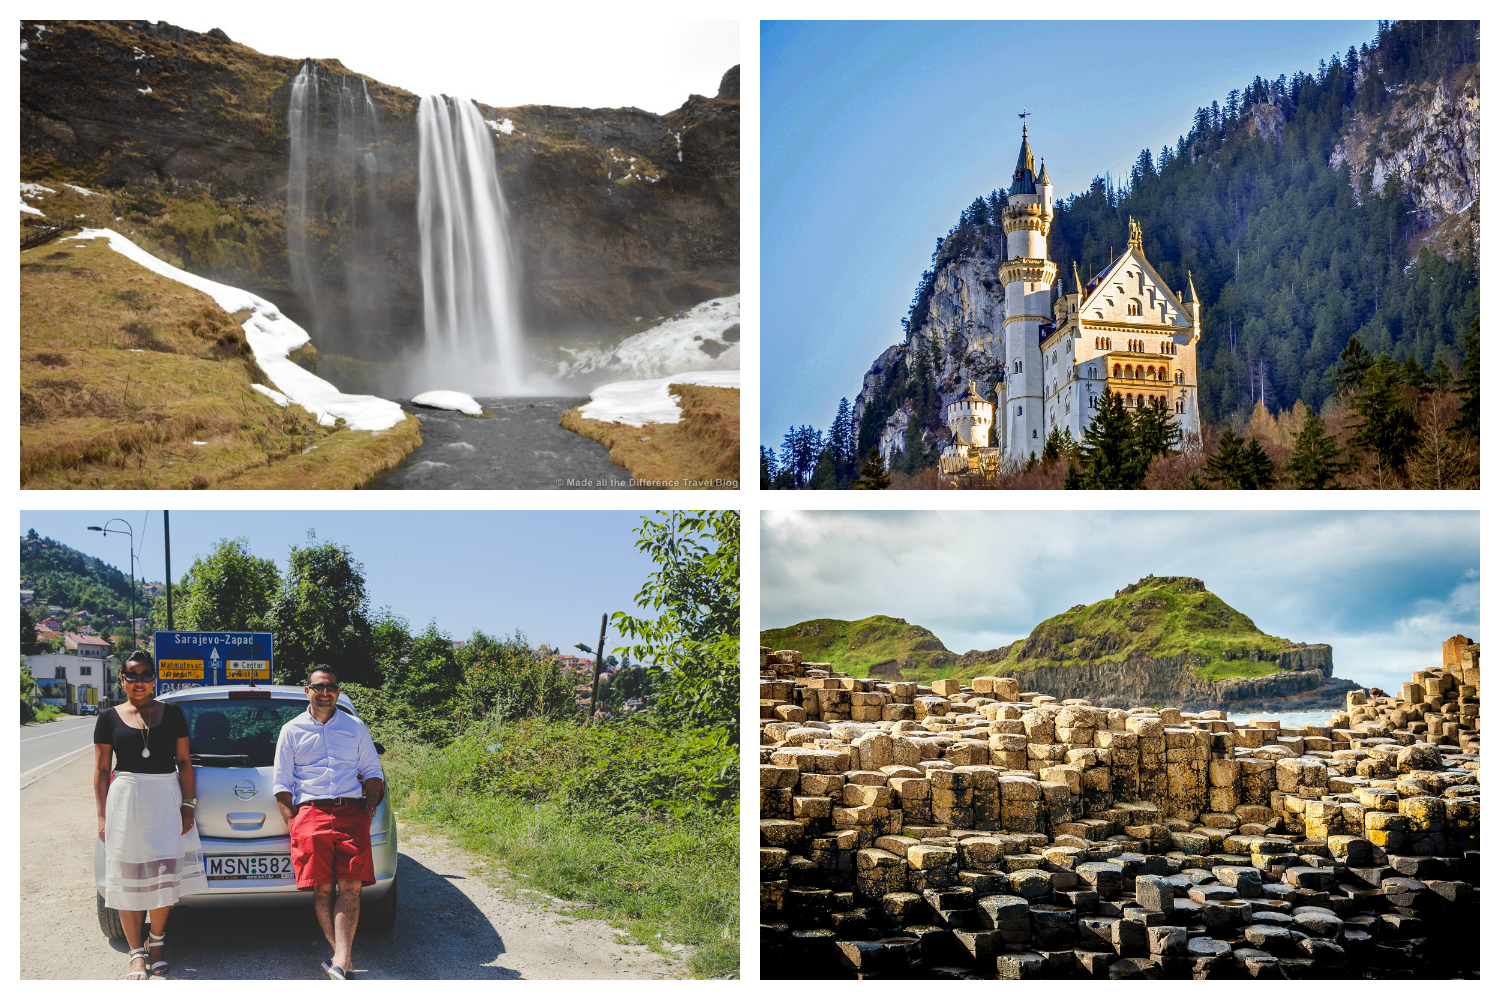 clockwise: Selfoss Waterfall in Iceland [Made All The Difference], Neuschwanstein  Castle in Germany [Travel Addicts], the other-worldly geology of the Giant's Causeway in Ireland [Travel Addicts], Brock and Tanj in the Balkans [A Travelogue by Brock and Tanj]